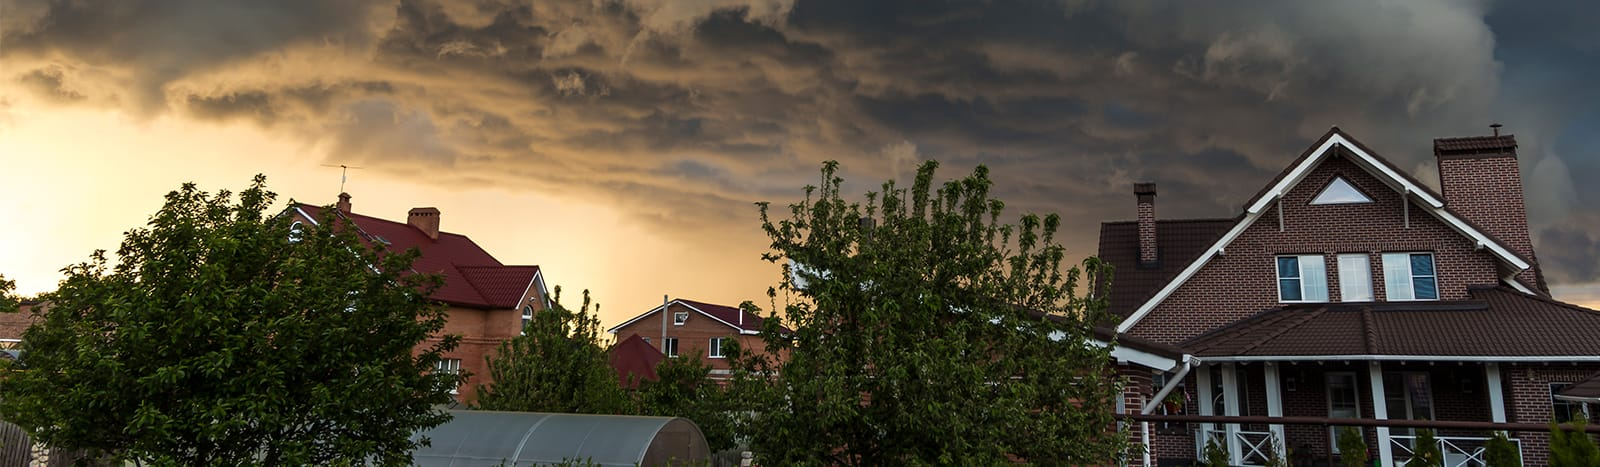 Residential neighbourhood with threatening storm clouds overhead